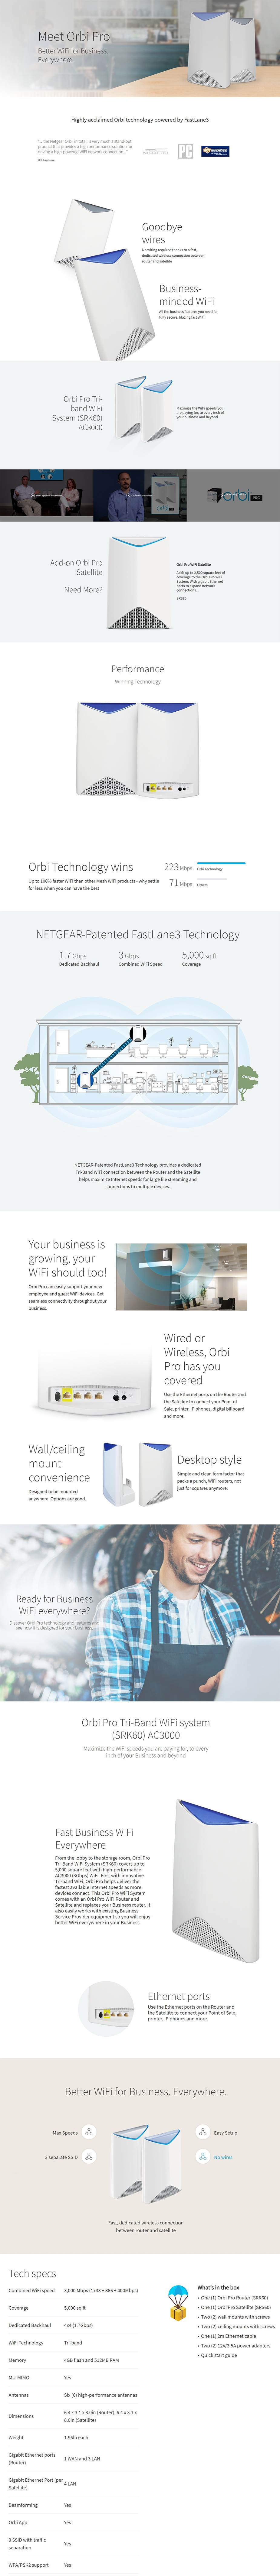 Netgear Orbi Pro SRK60 AC3000 Tri-band WiFi Router and Satellite System